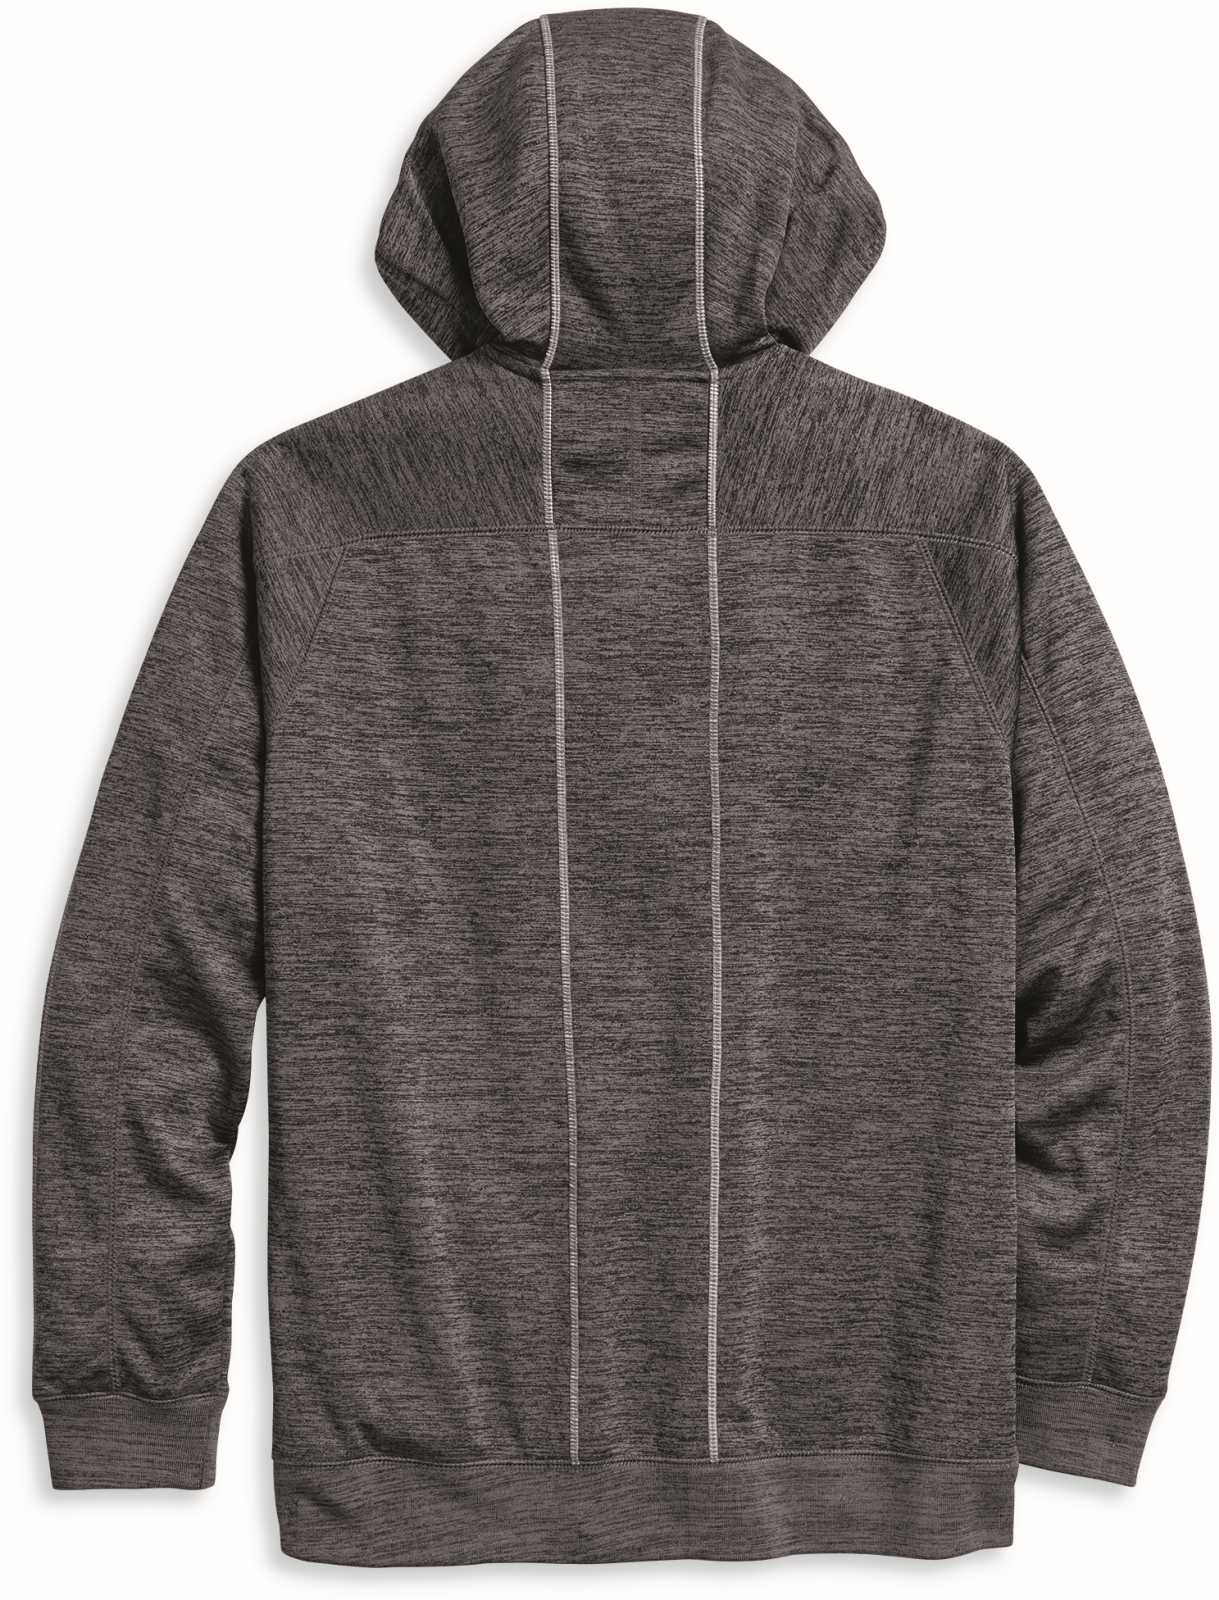 3XL Wiseco Performance Piston Pullover Hoodie Sweater Sz S